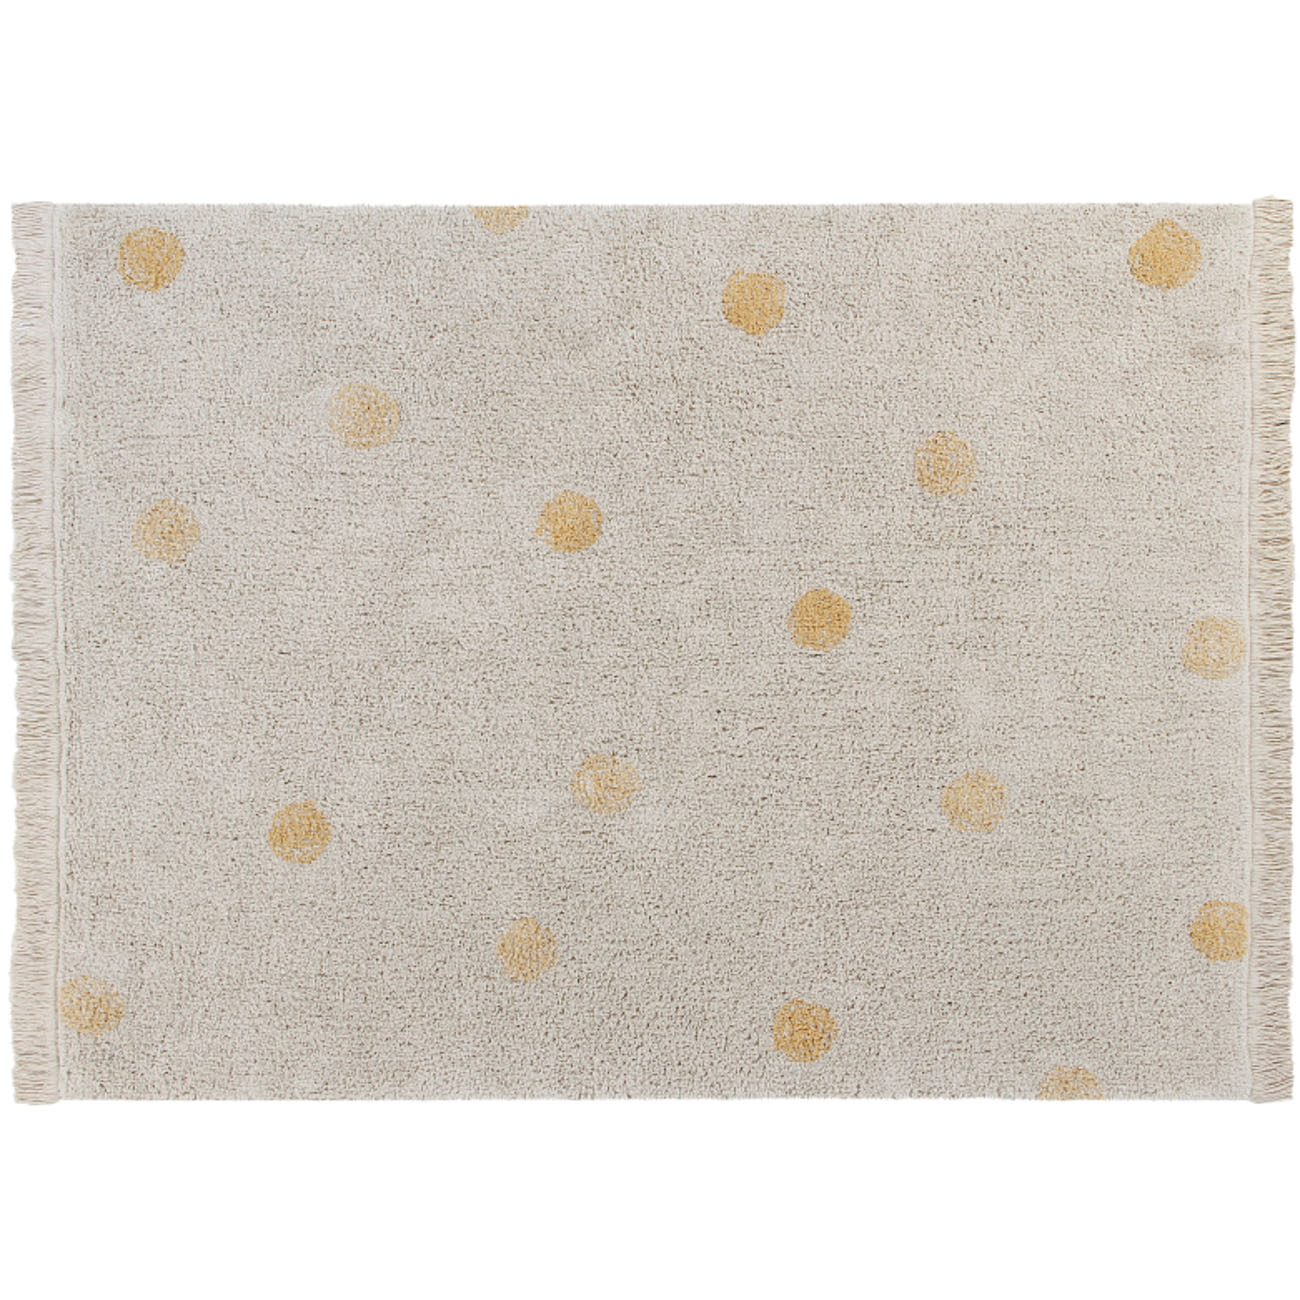 Tapete Lorena Canals Topos Hippy Honey 120 x 160 cm